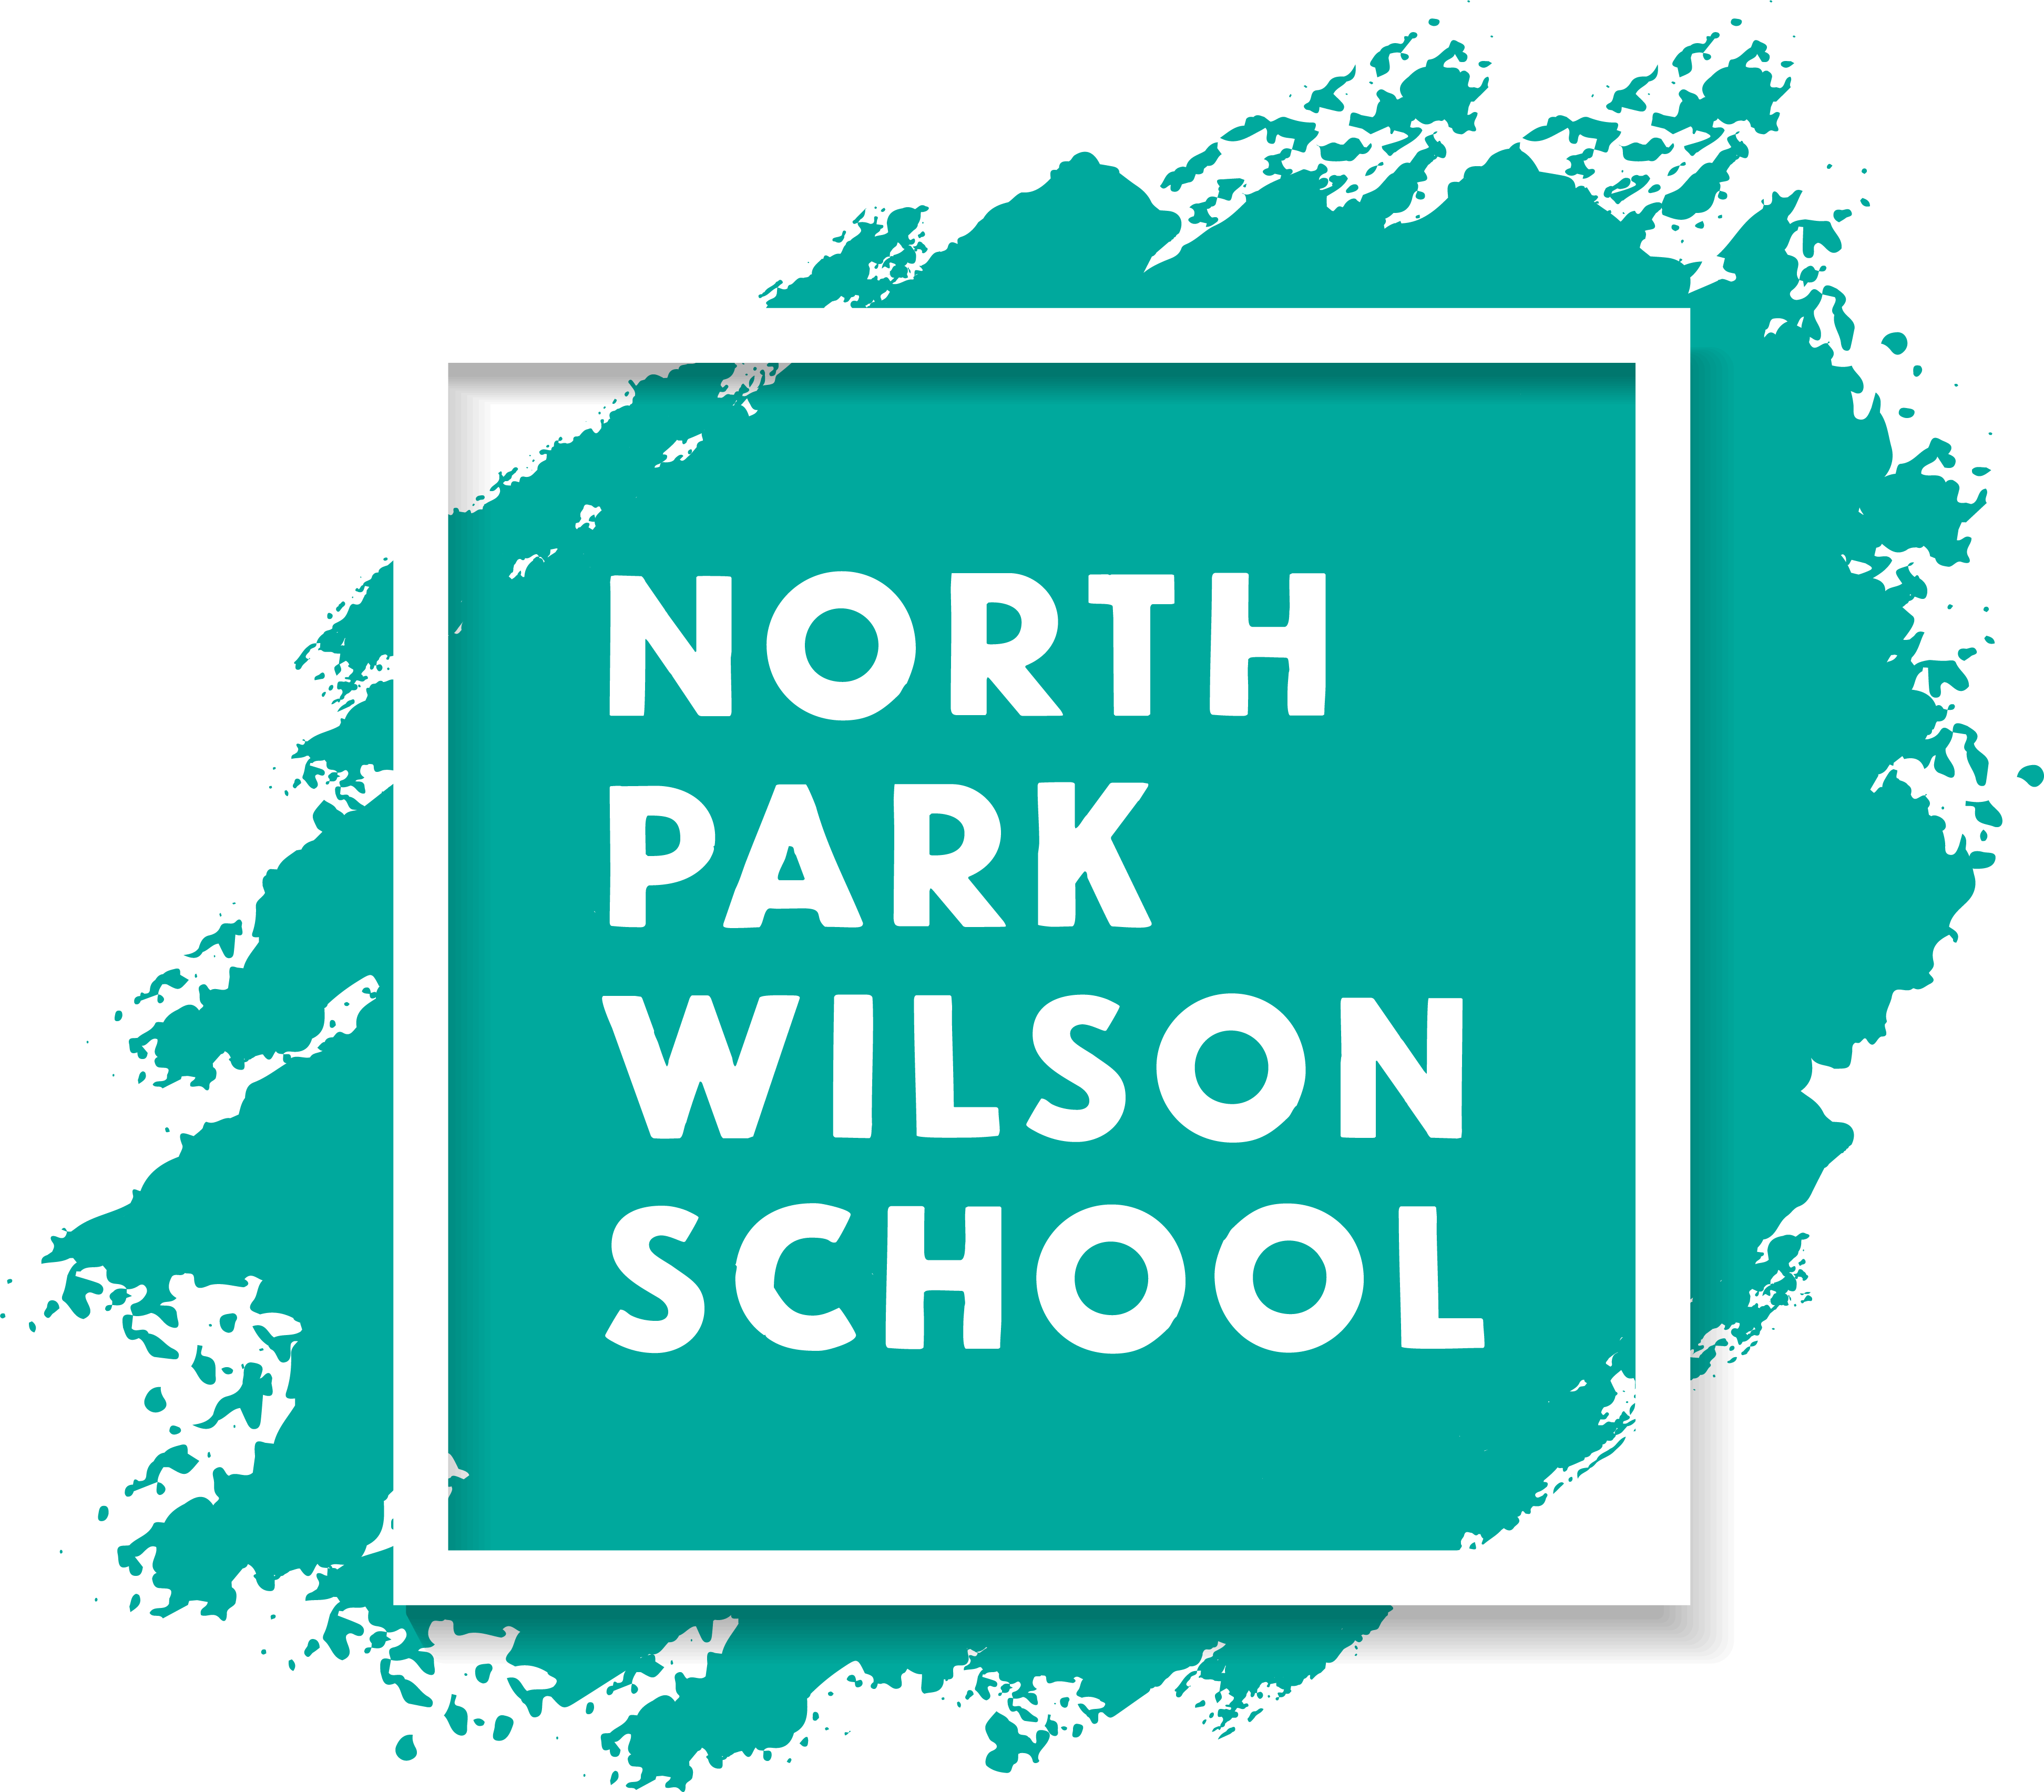 North Park Wilson School logo